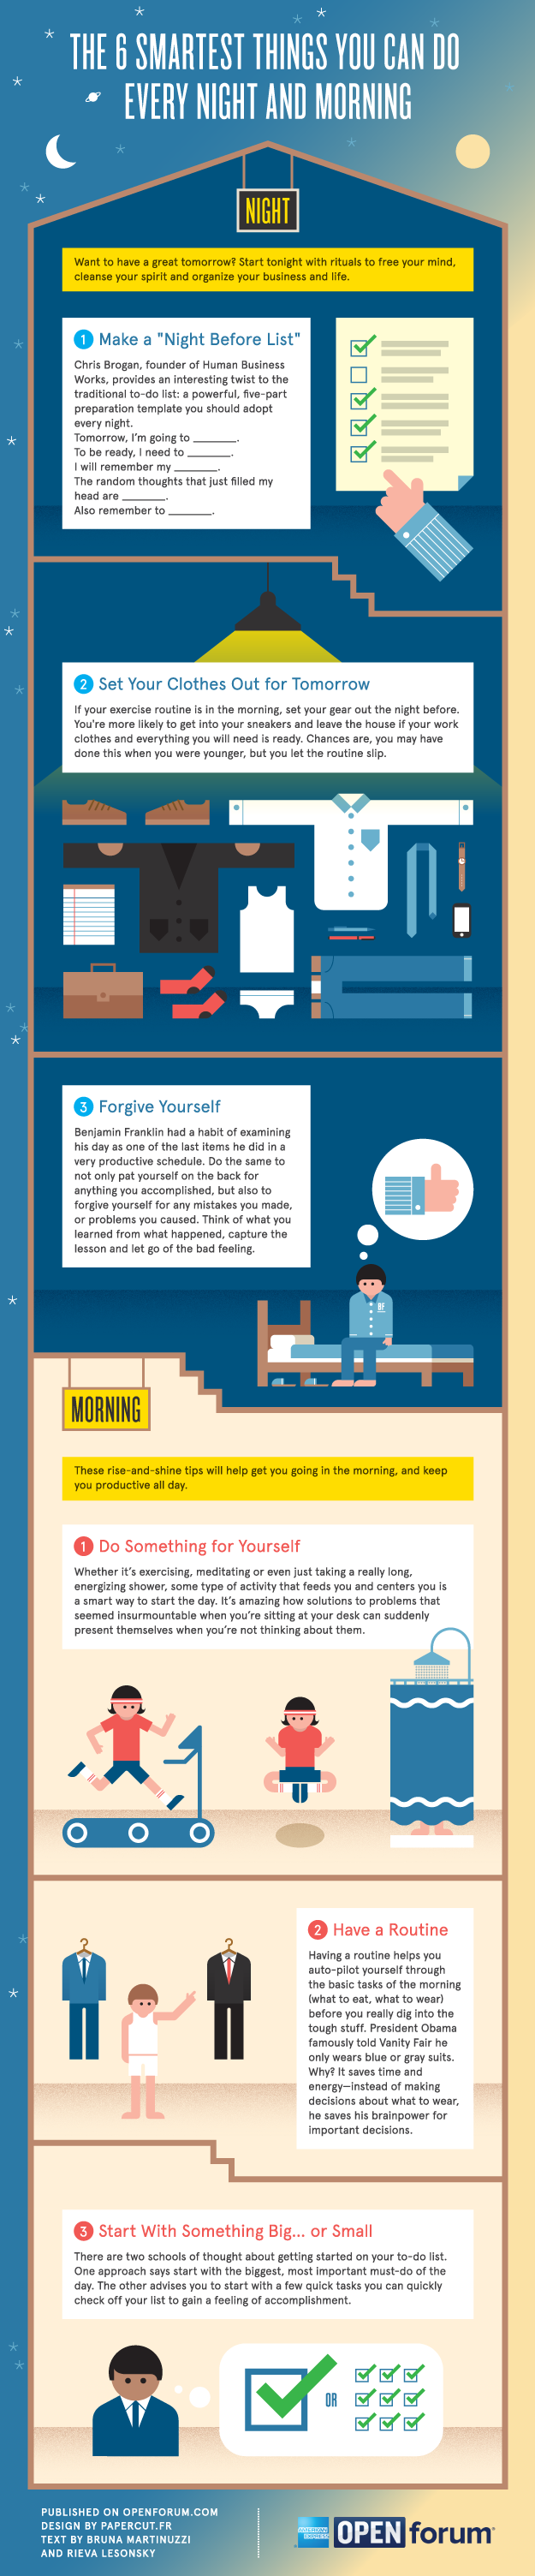 Six Smart Tips For Giving Your Day A Good Start Infographic